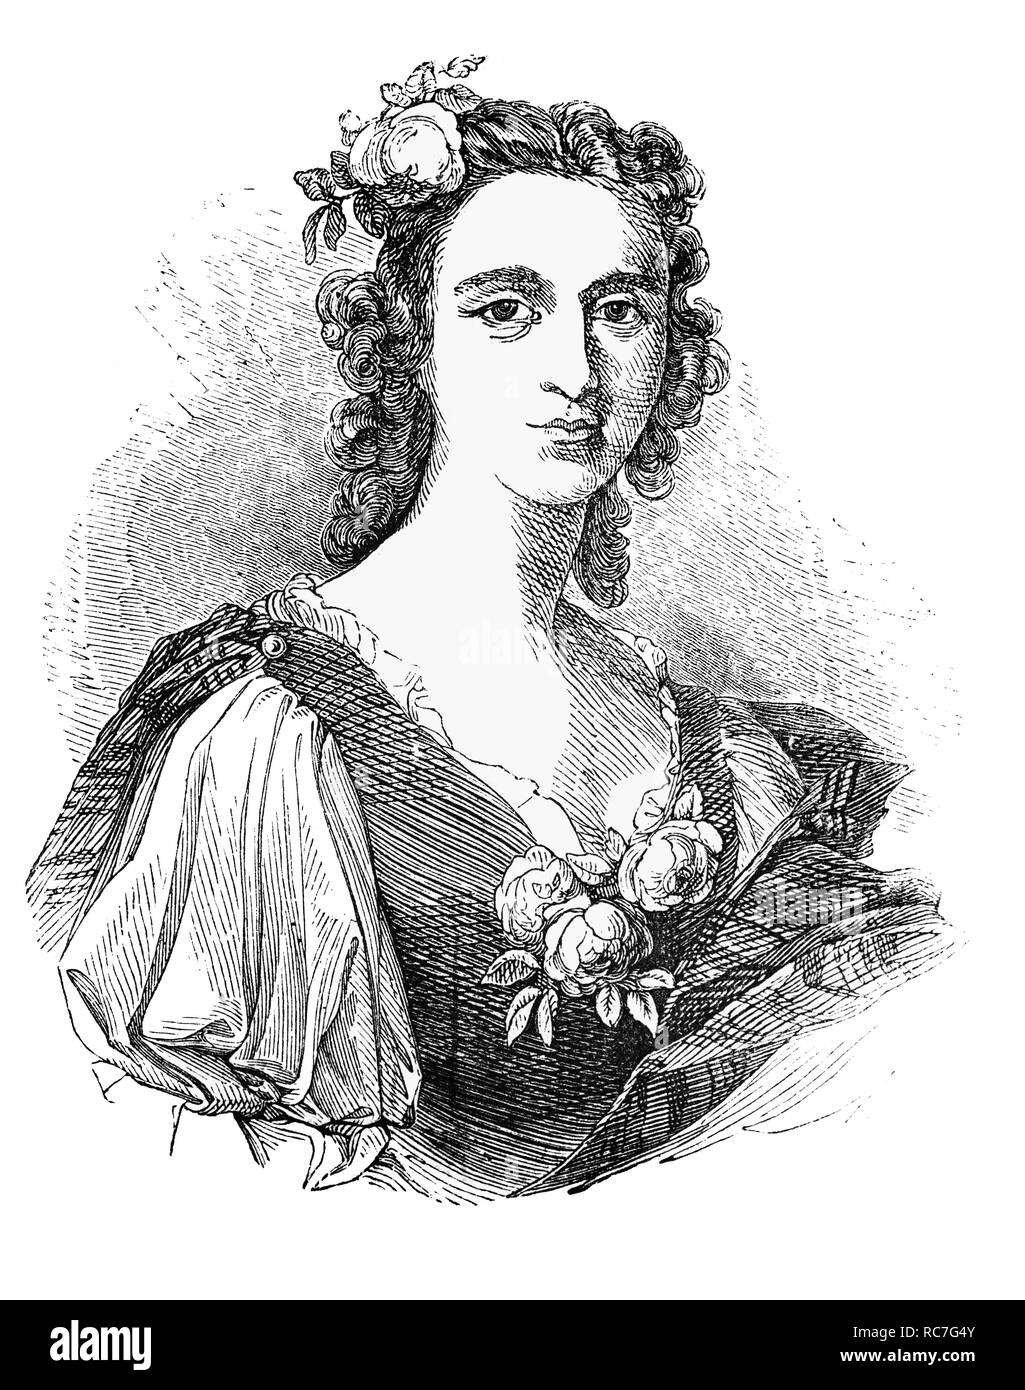 """A portrait of Flora MacDonald, who helped Charles Edward Stuart (1720-1788) aka  """"The Young Pretender"""", """"The Young Chevalier"""" and in popular memory as """"Bonnie Prince Charlie"""", escape to the Isle of Skye by taking him, disguised as her Irish maid, """"Betty Burke"""", in a small boat. The flight of has become the stuff of legend and is commemorated in the popular folk song """"The Skye Boat Song"""". Stock Photo"""